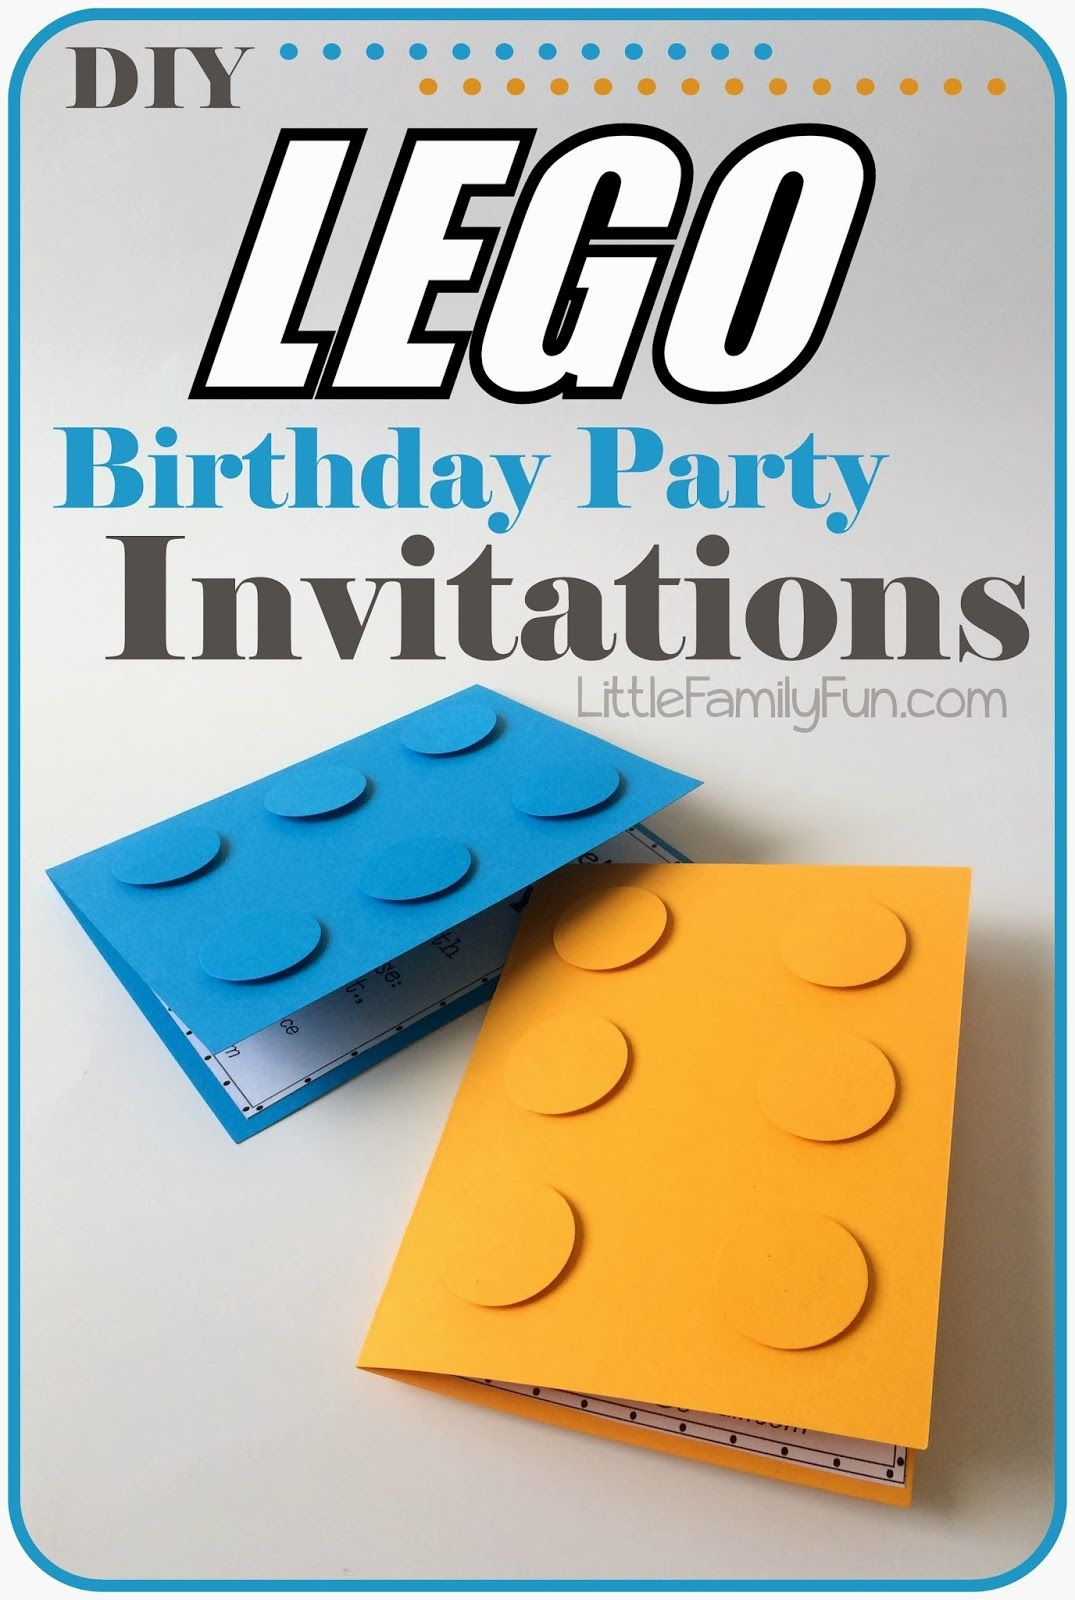 How to make lego party invitations so easy perfect for a boy how to make lego party invitations so easy perfect for a boy birthday party solutioingenieria Choice Image